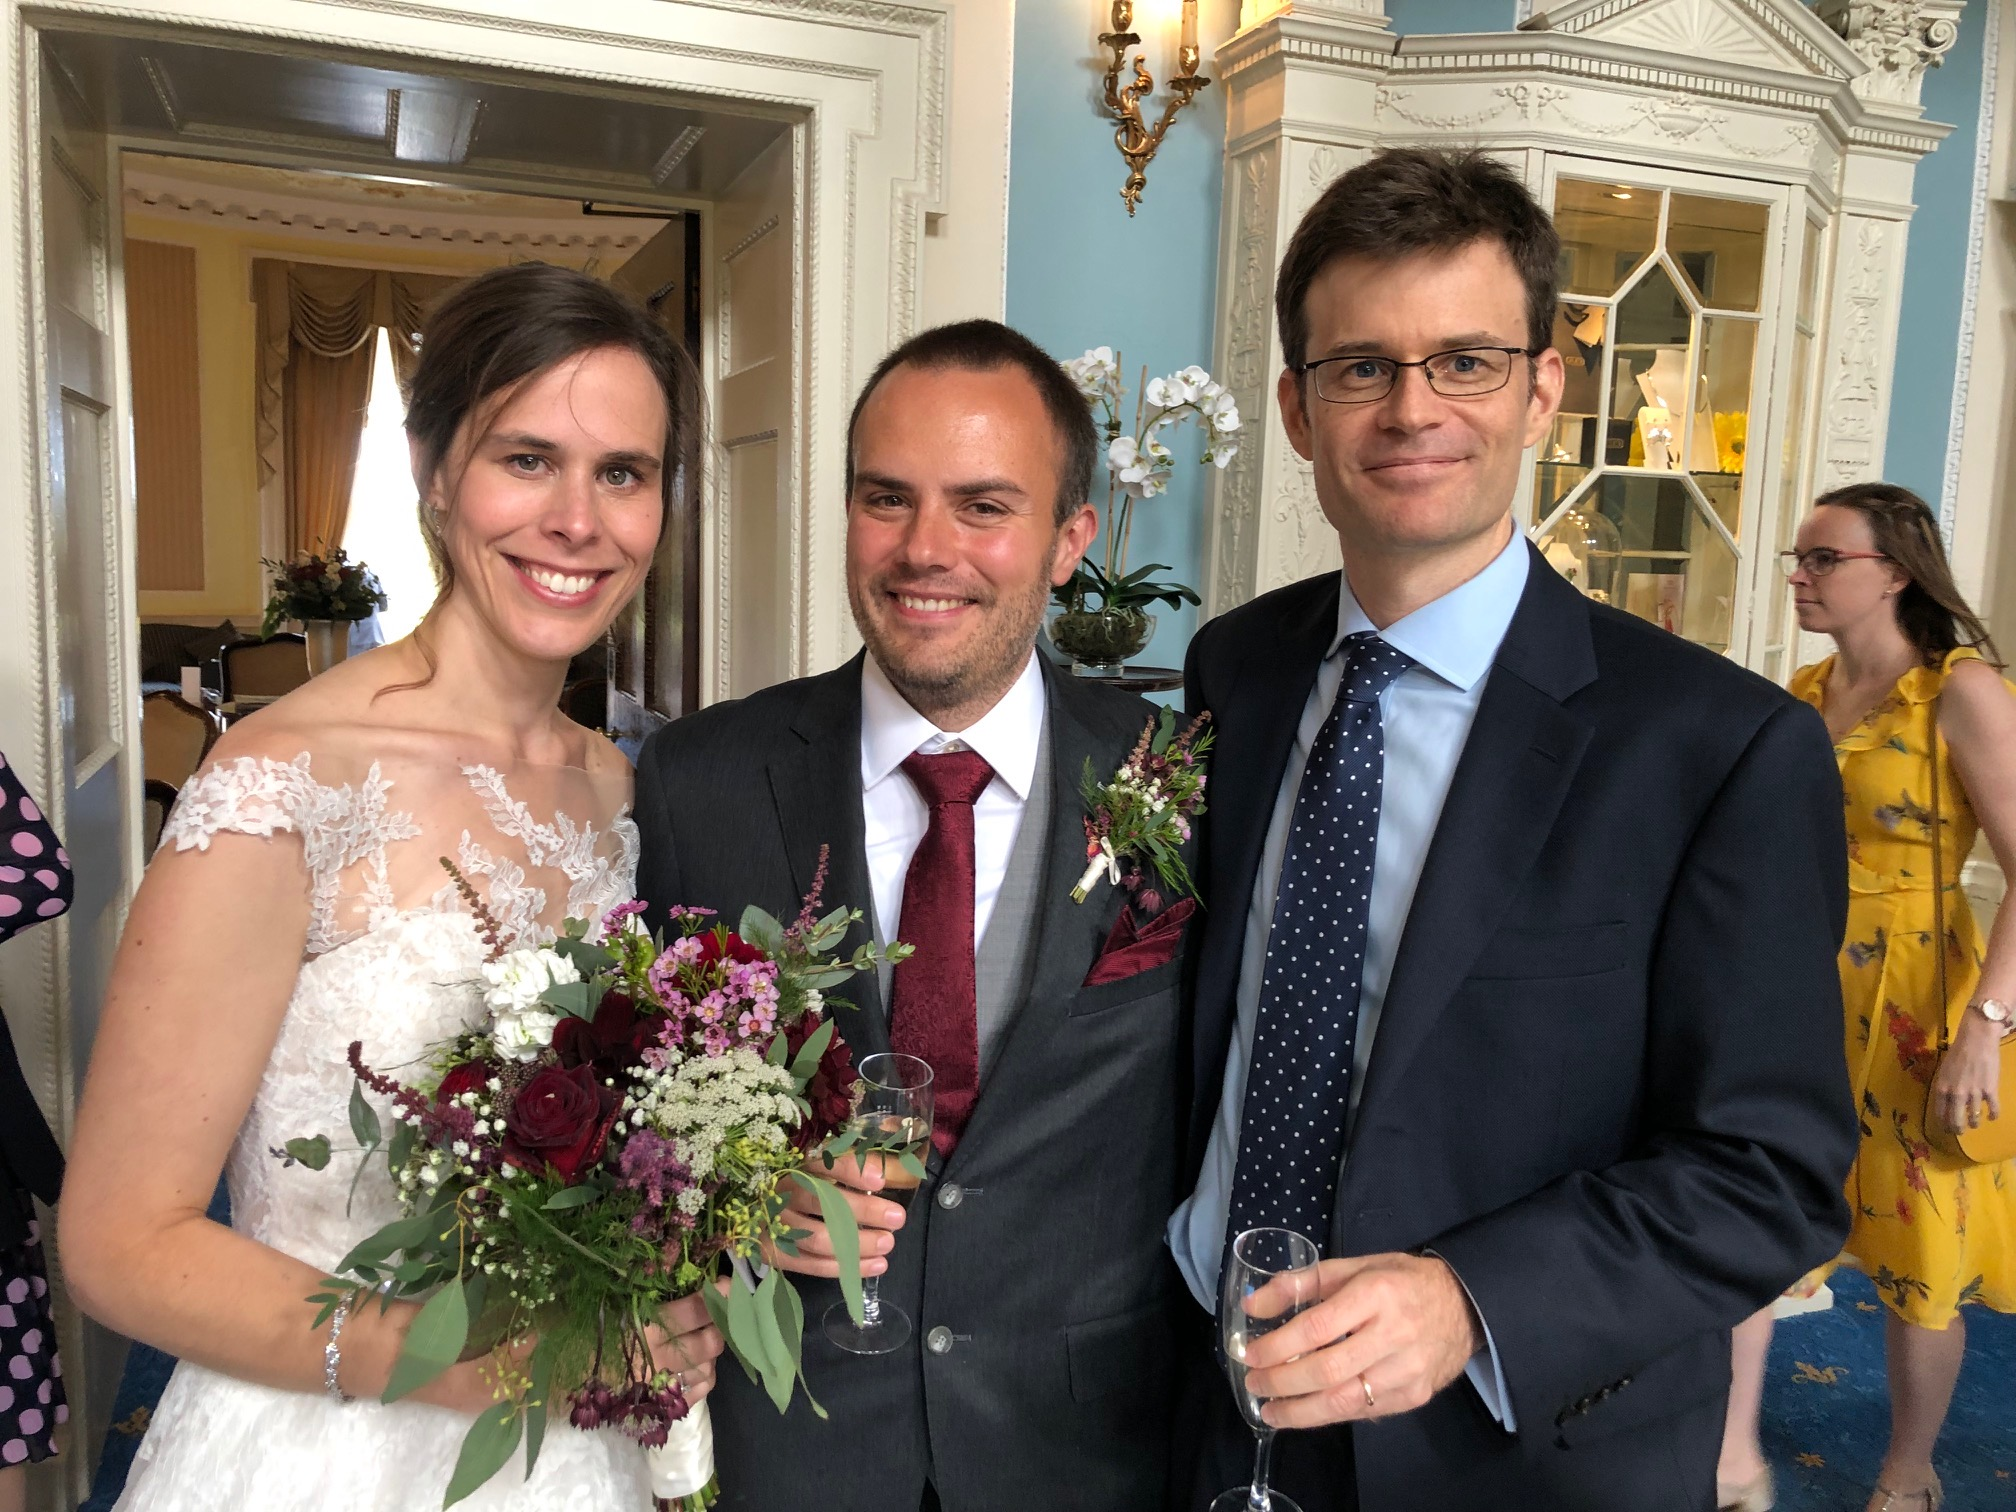 Nicky (former PhD student) and Marco (former postdoc) get married!